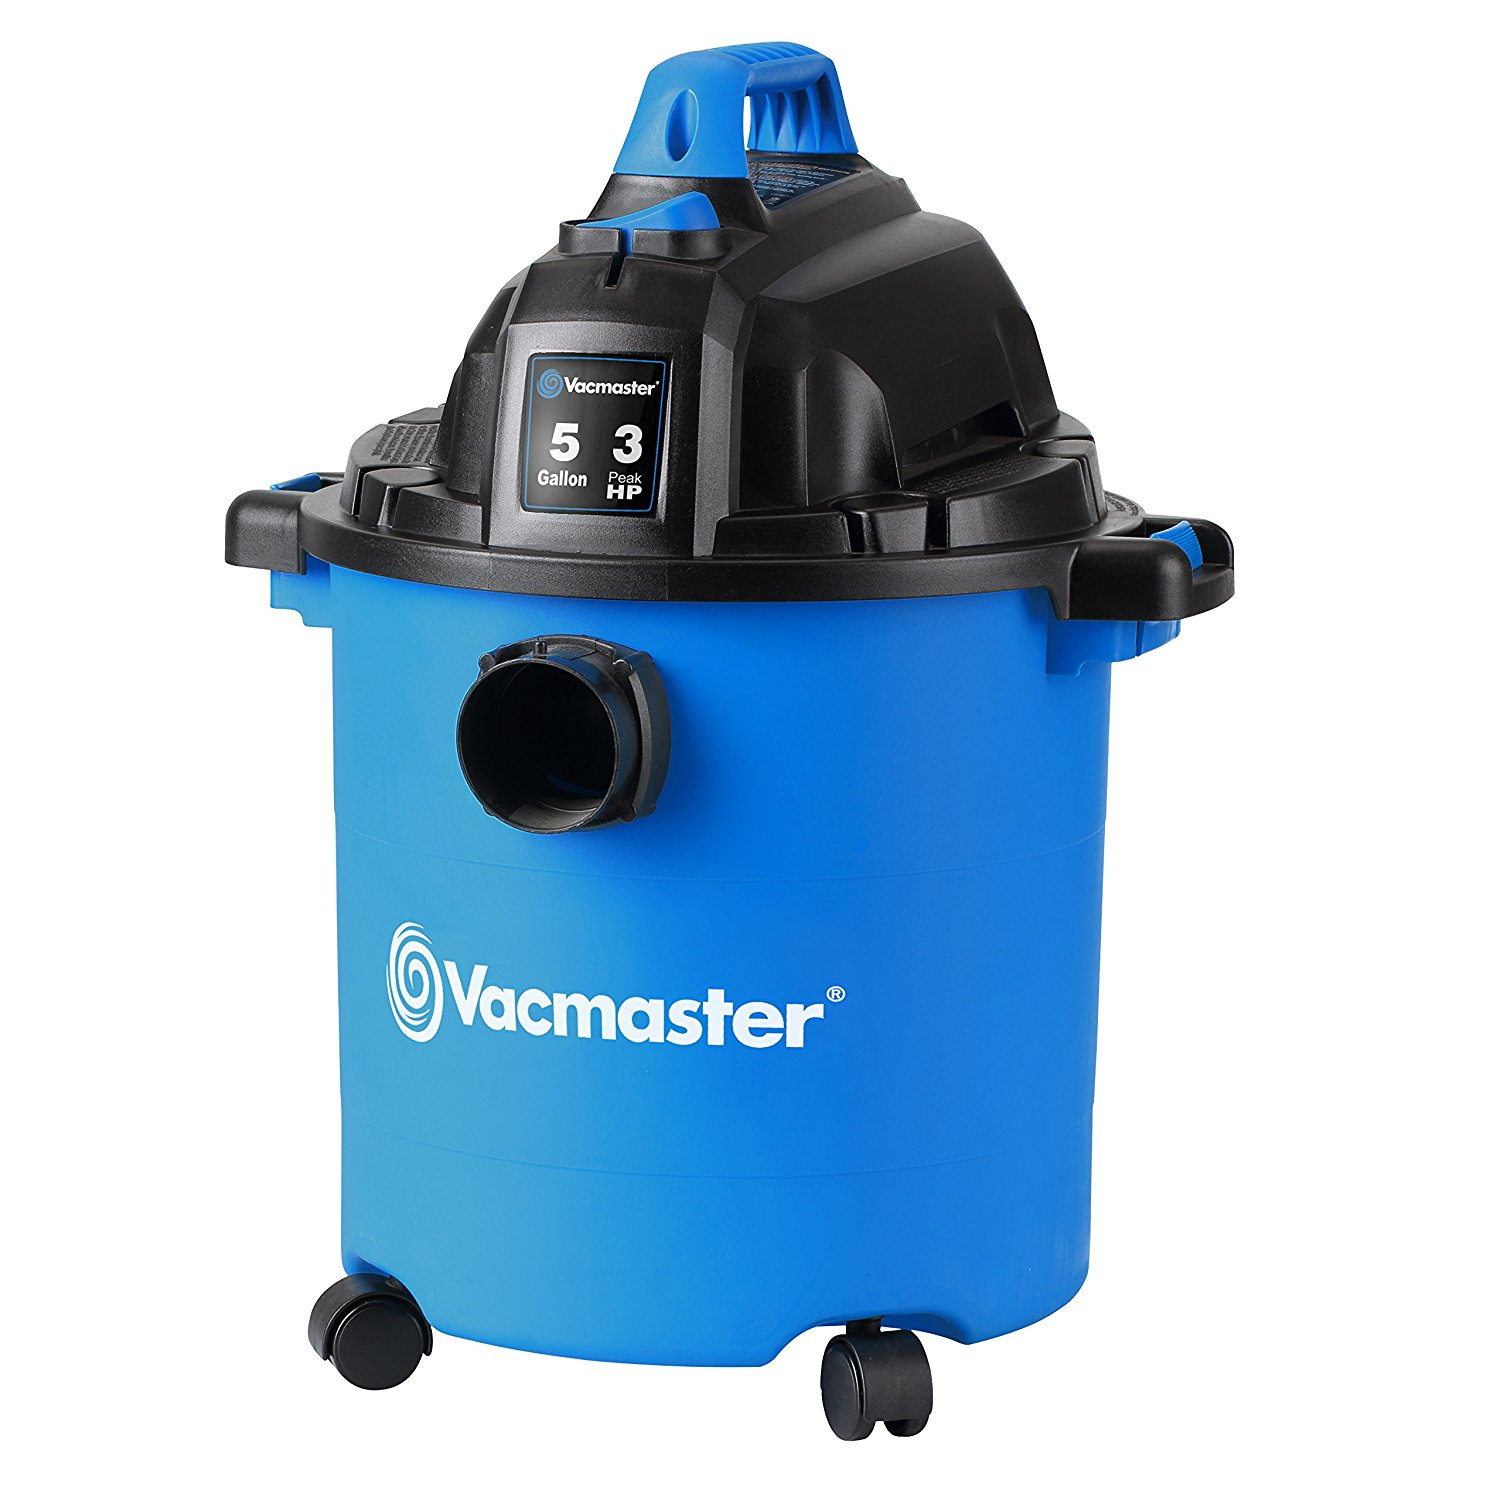 Vacmaster Gallon Peak